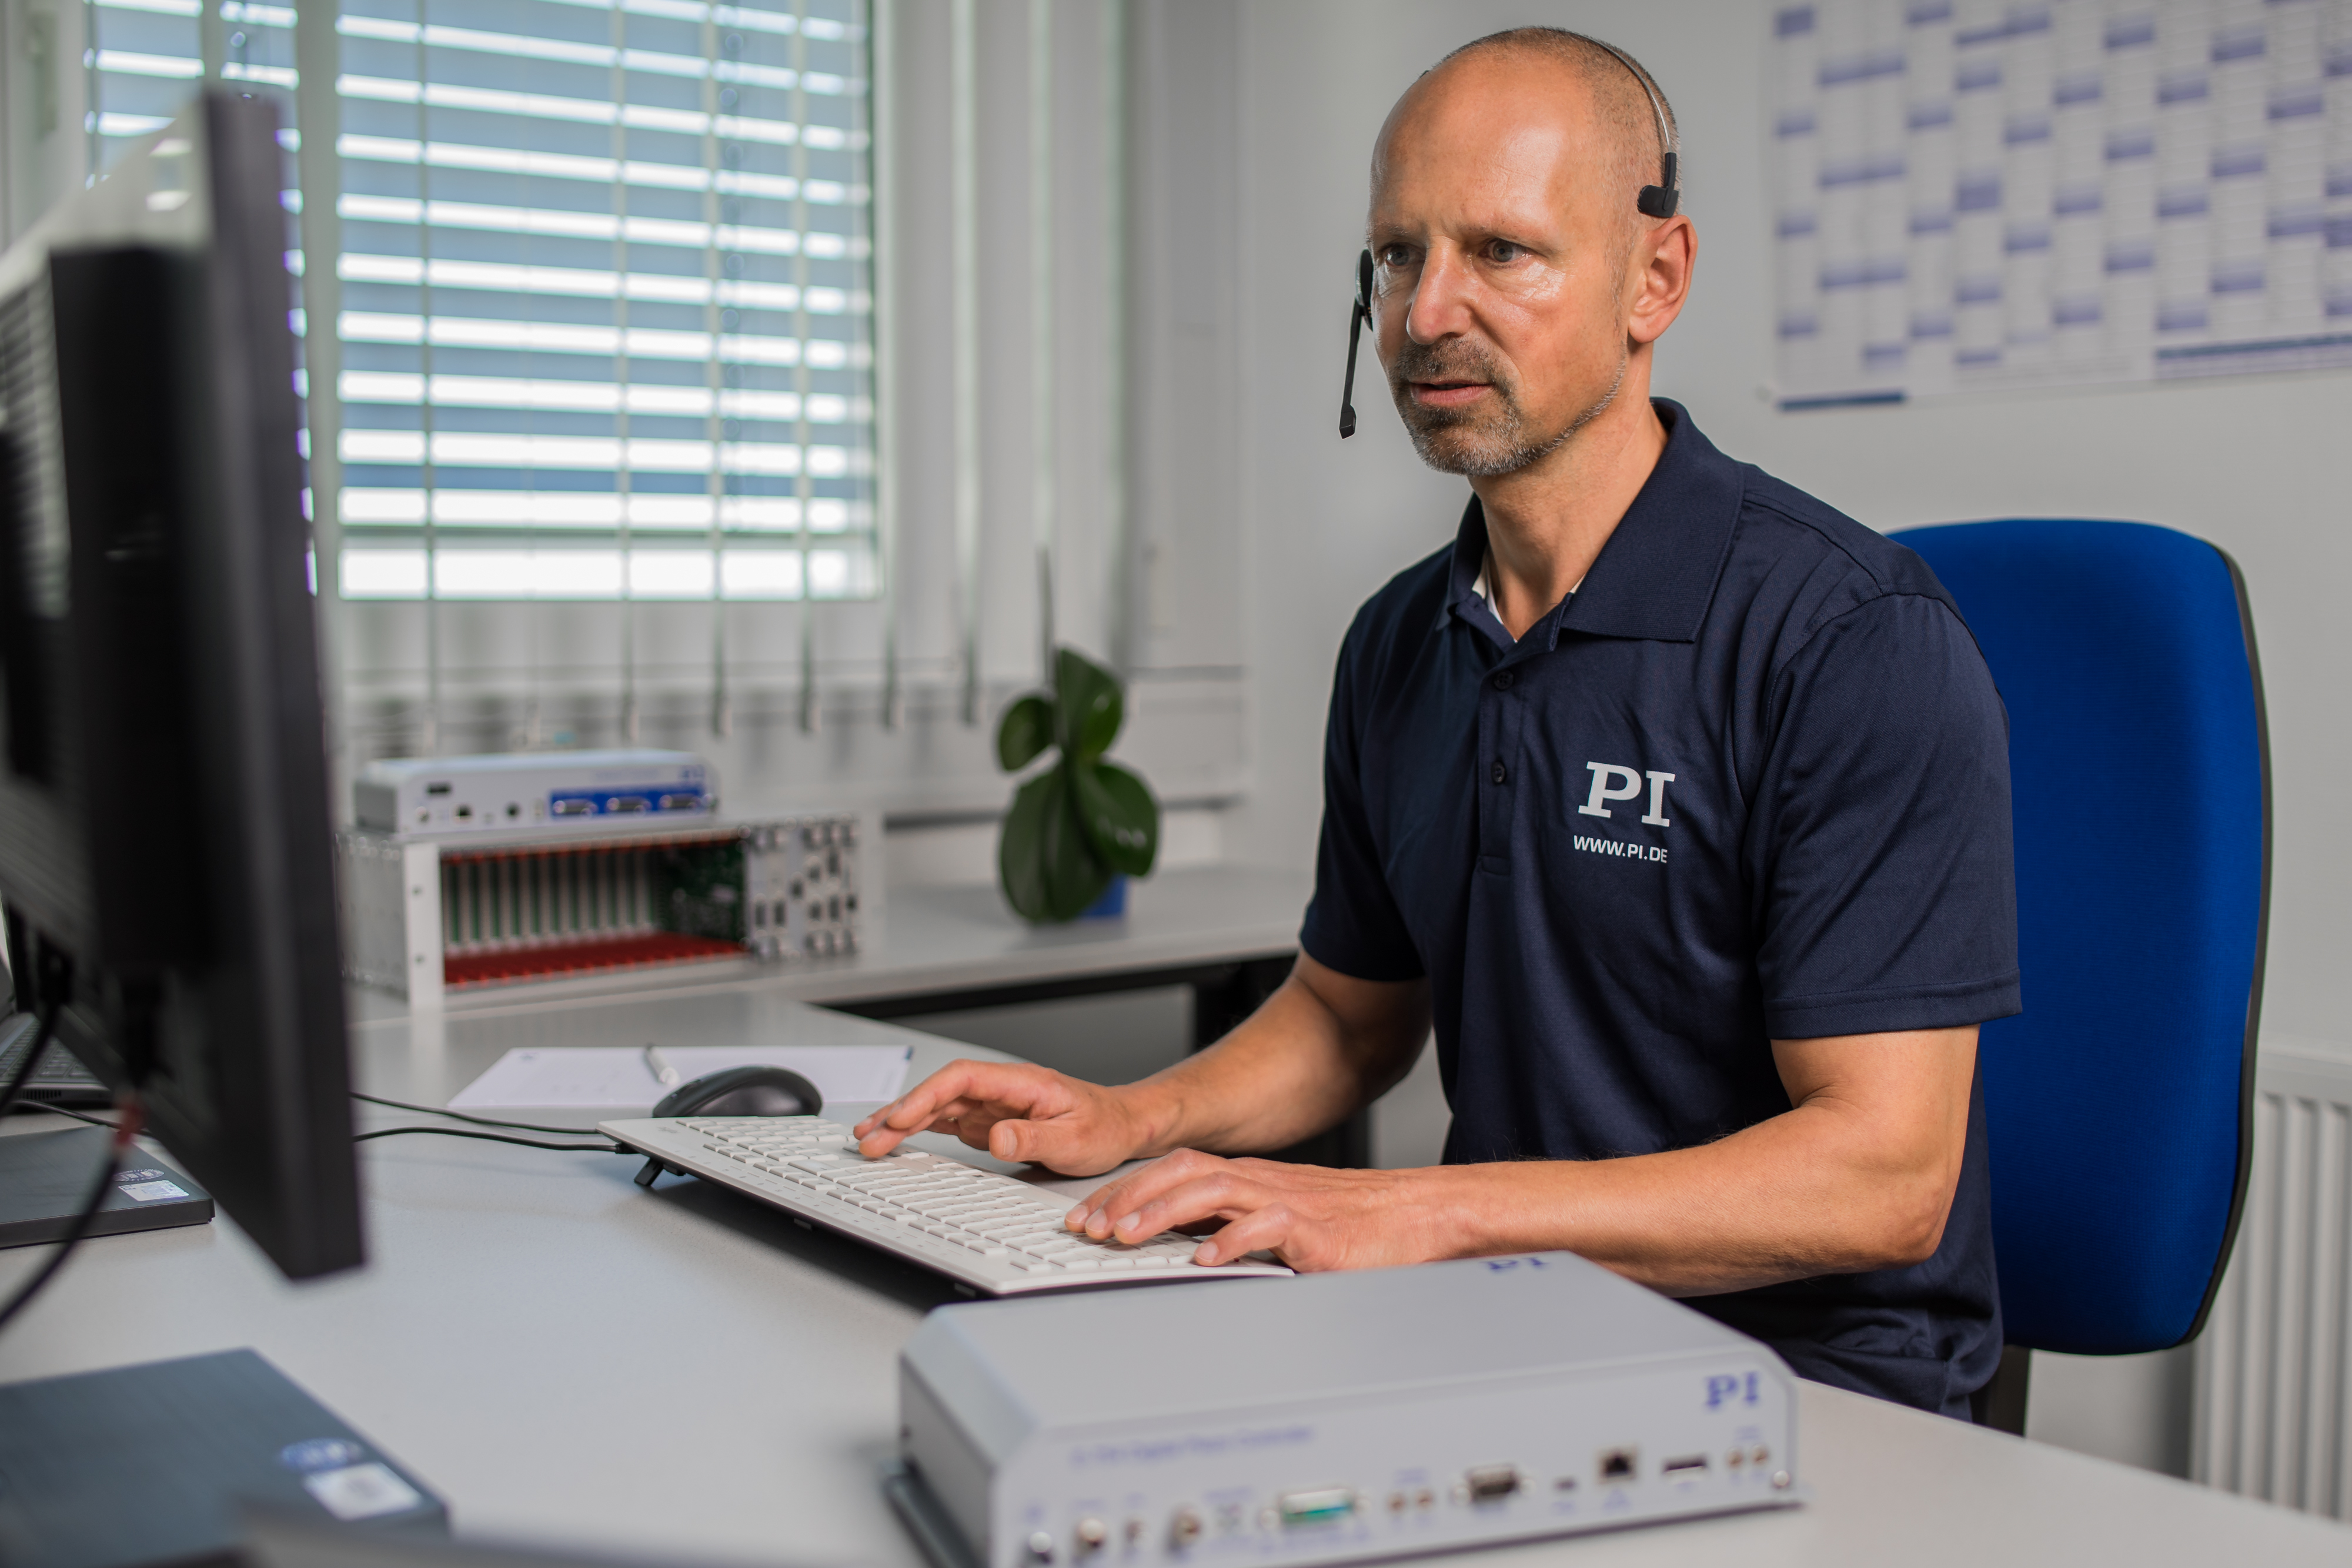 PI Group's service engineer providing remote support in real-time